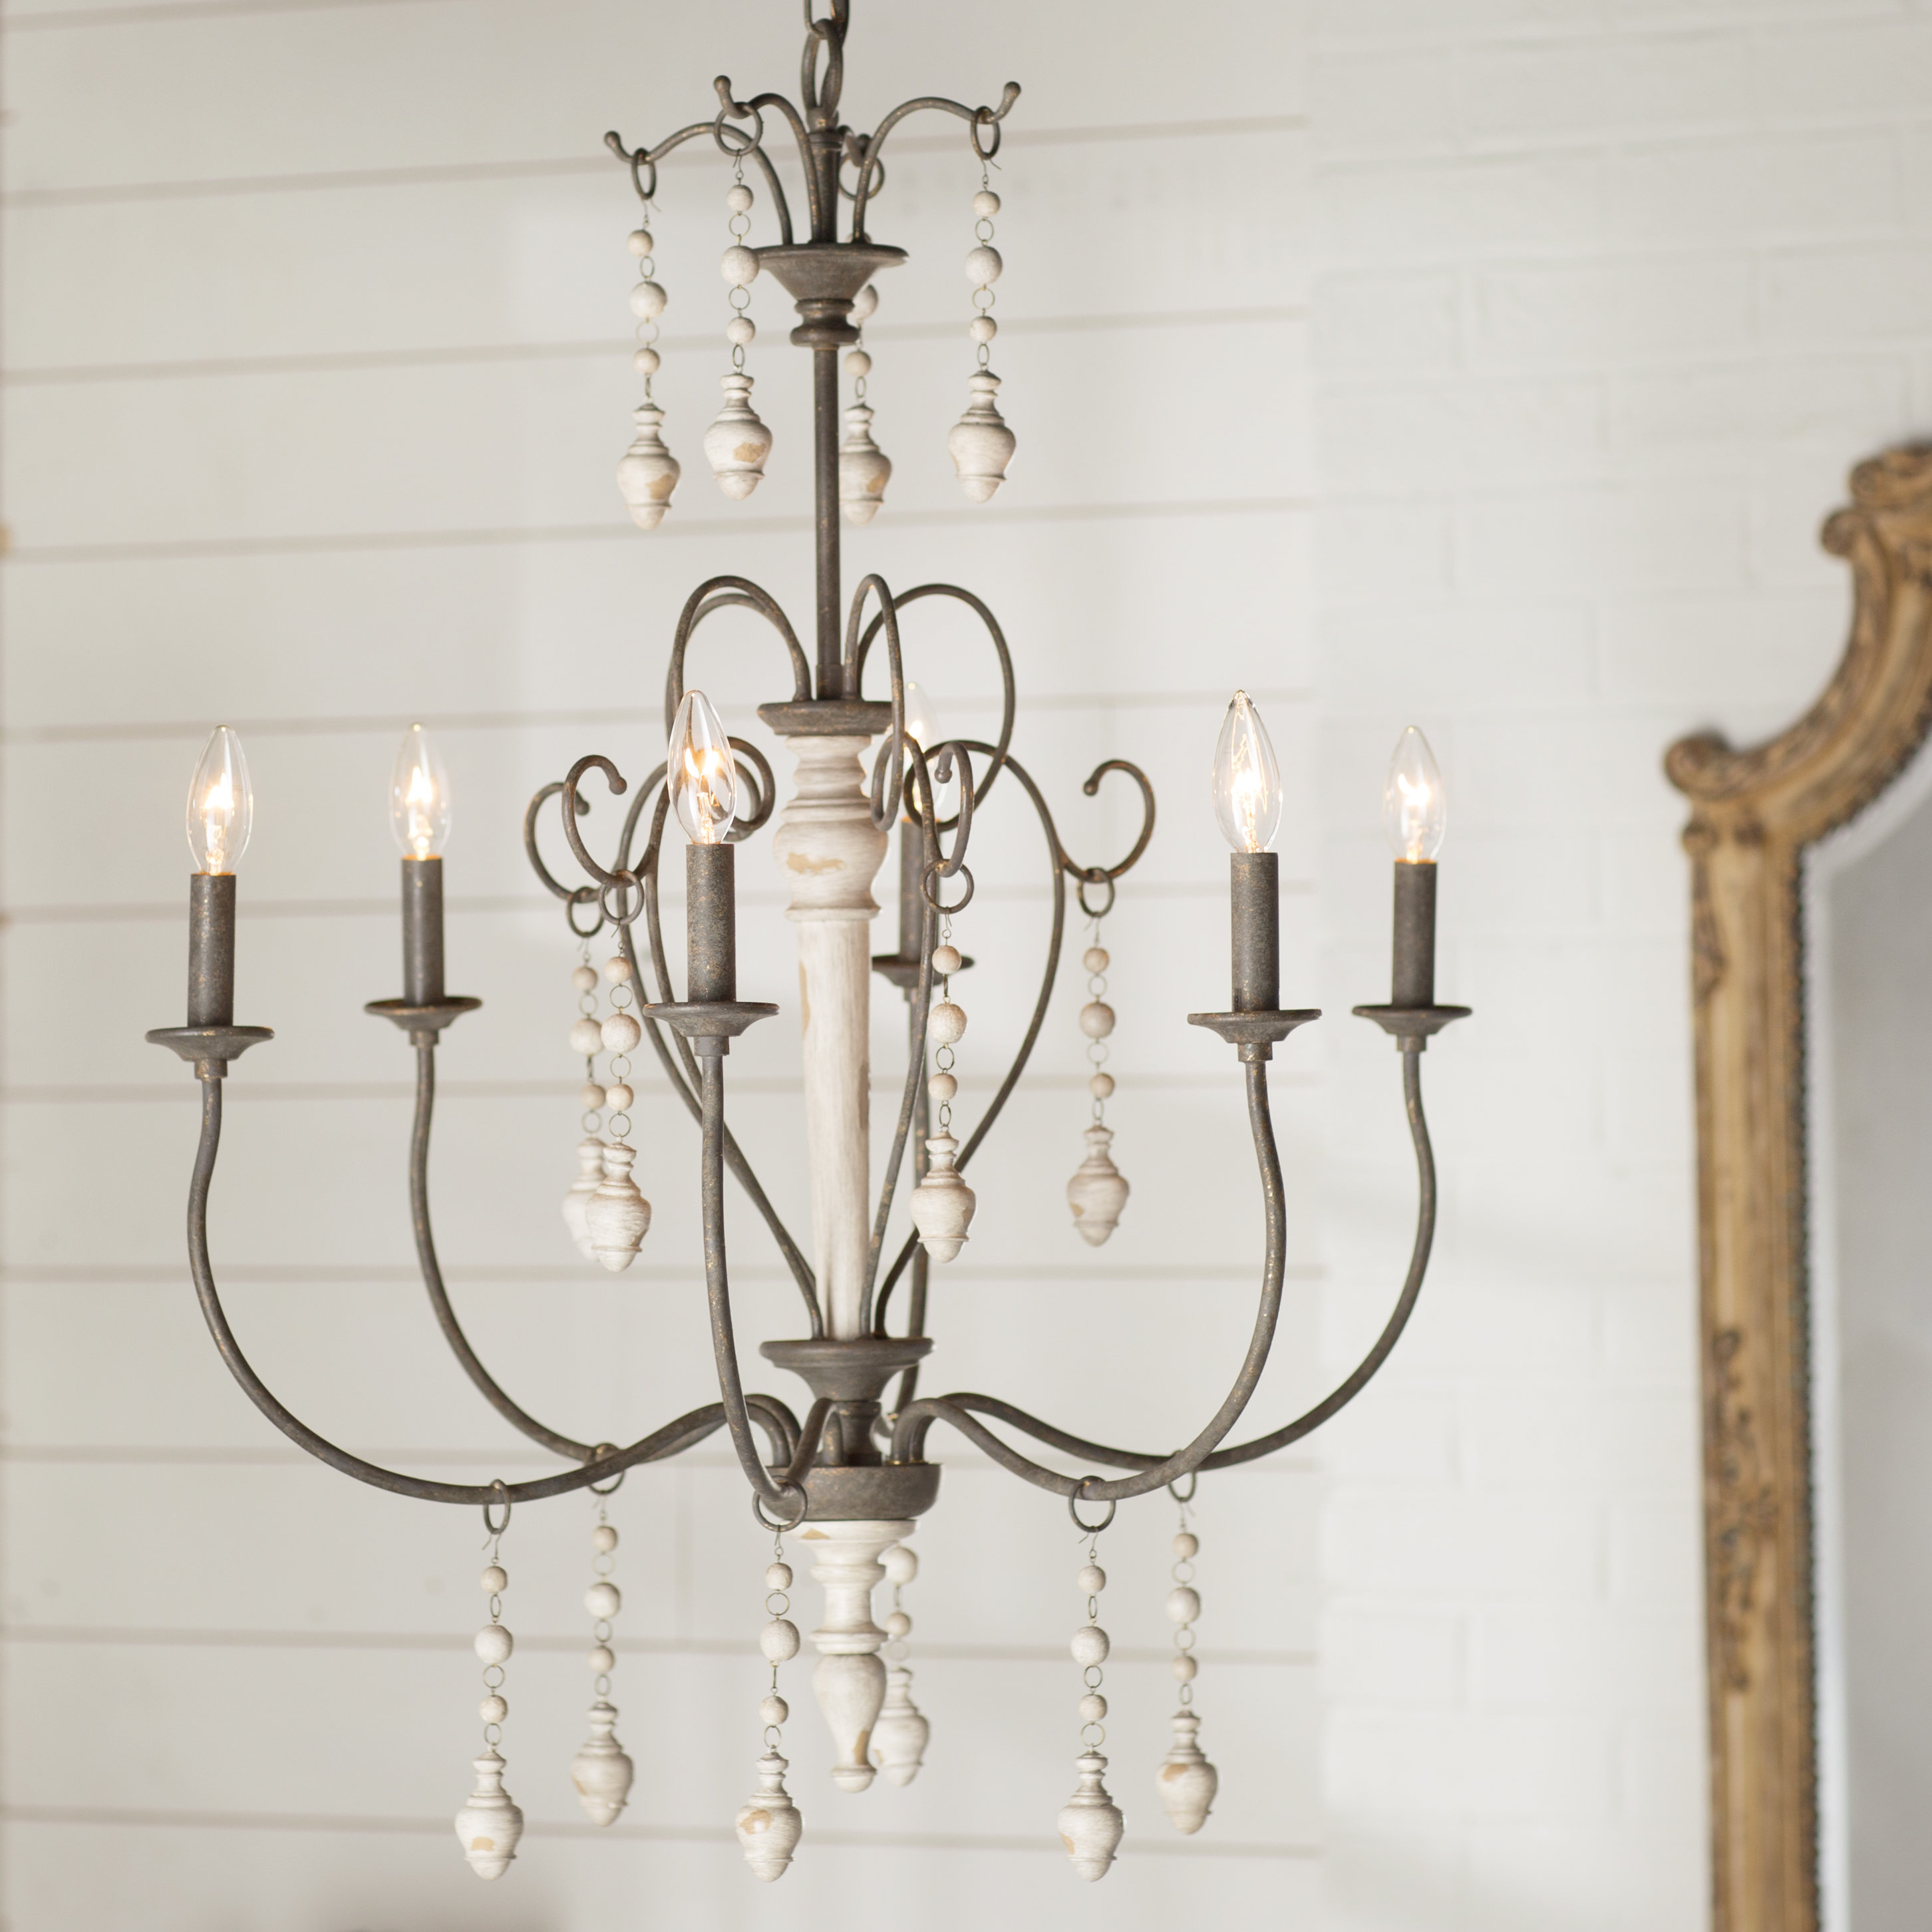 Shaylee 6 Light Candle Style Chandeliers Within Preferred Bouchette Traditional 6 Light Candle Style Chandelier (View 13 of 25)